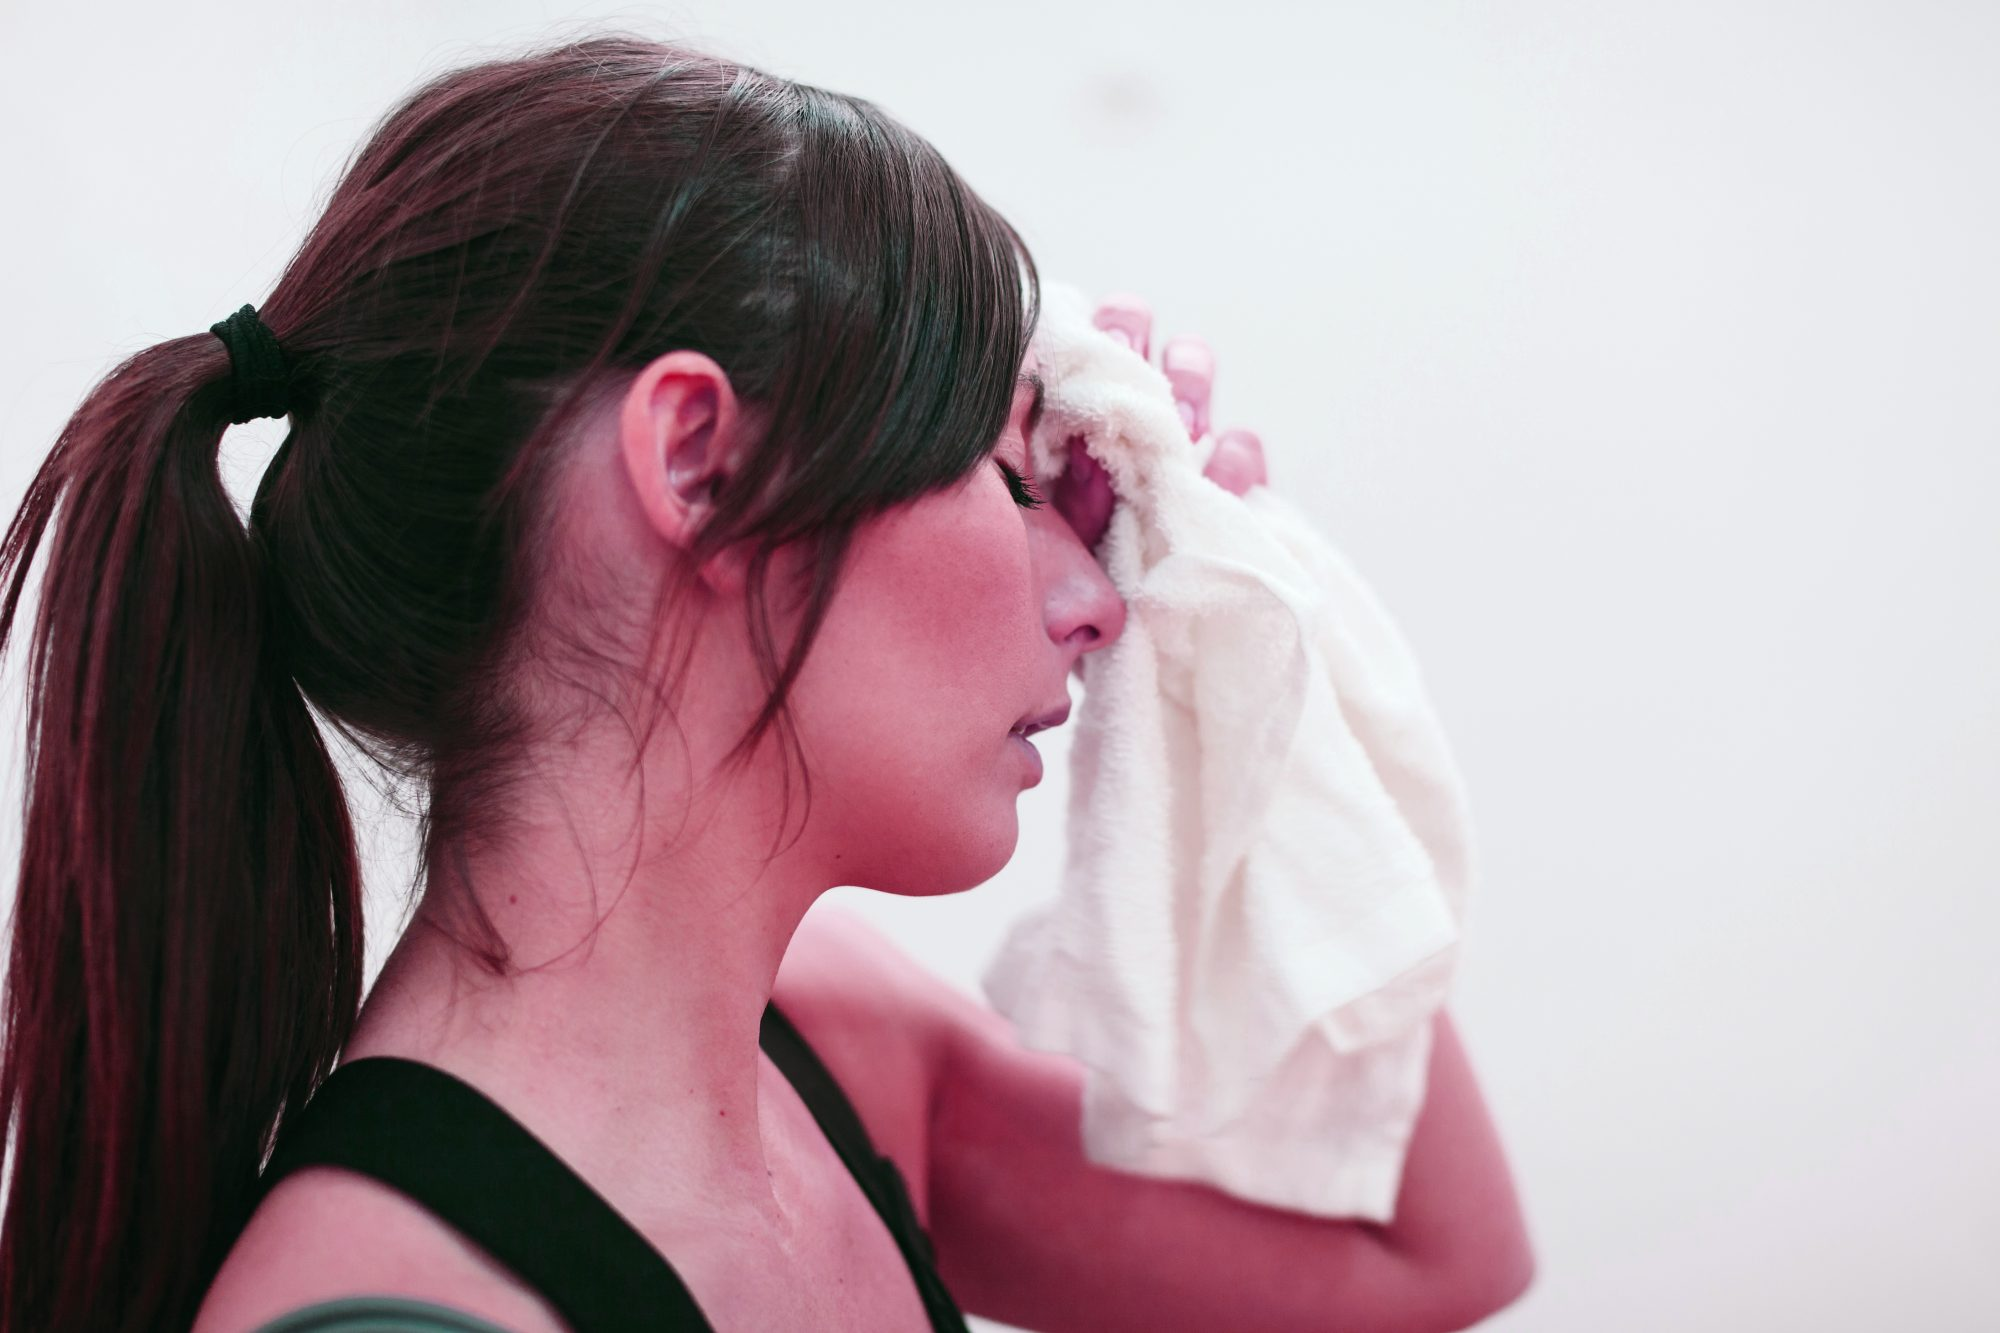 rosacea triggers symptoms flare-ups exercise stress